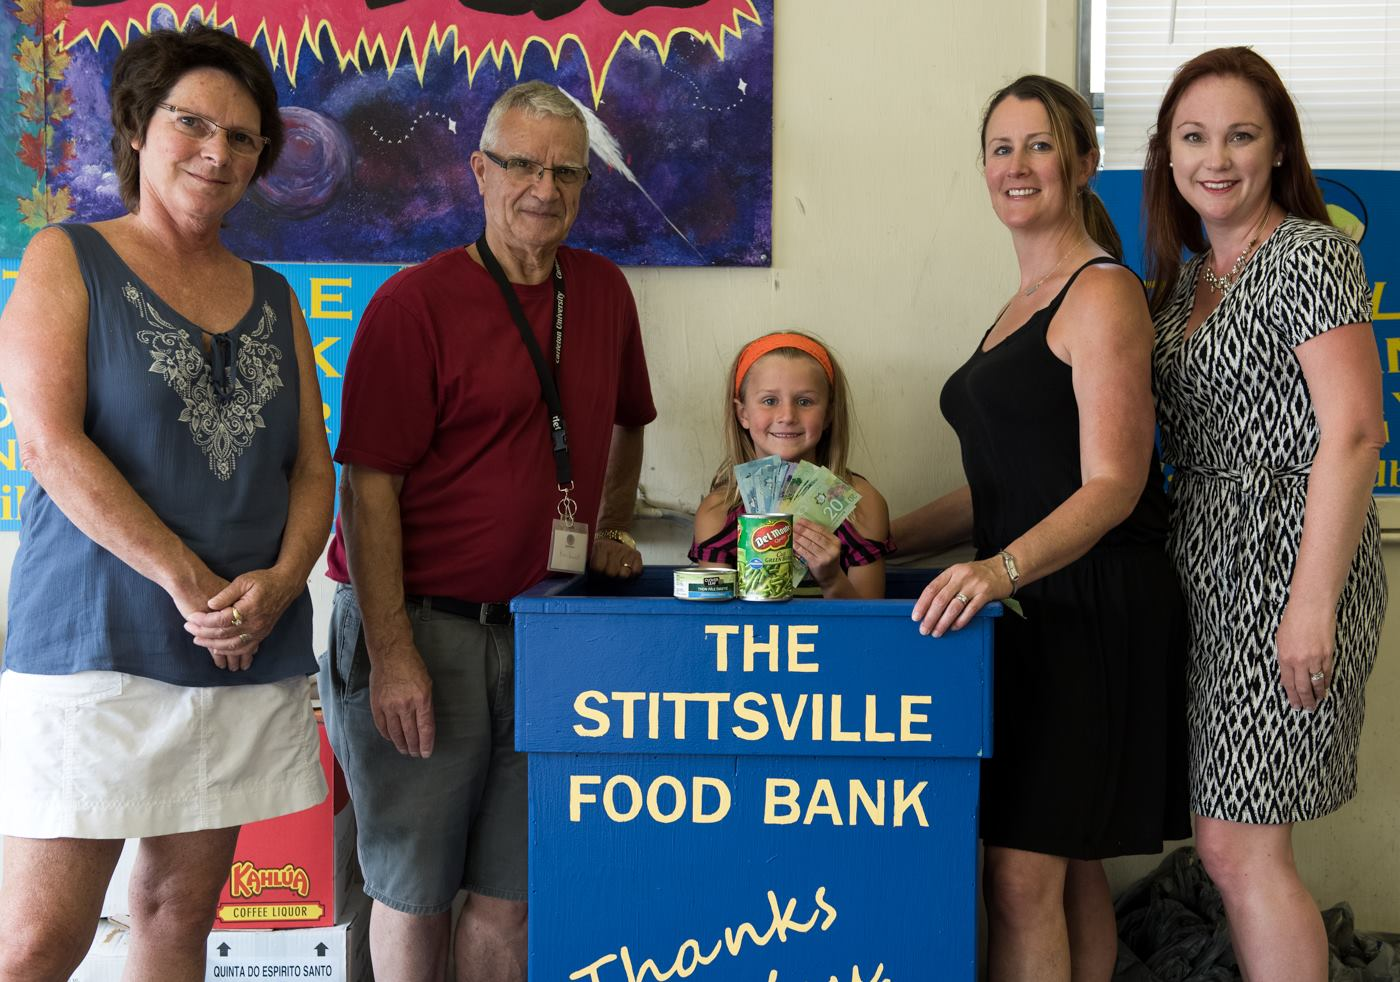 Shauna Brownlee-Starr from Shauna Brownlee Starr - Property Friends - Real Estate and SVA board member Sarah Rozema-Seaton from Big Red Bow Digital Marketing stopped by the Stittsville Food Bank to deliver the donations from the Cinema Under the Stars event. The event raised $555 for our local food bank. Thank you to everyone who attended and gave so generously to our community. Together we make a big difference!